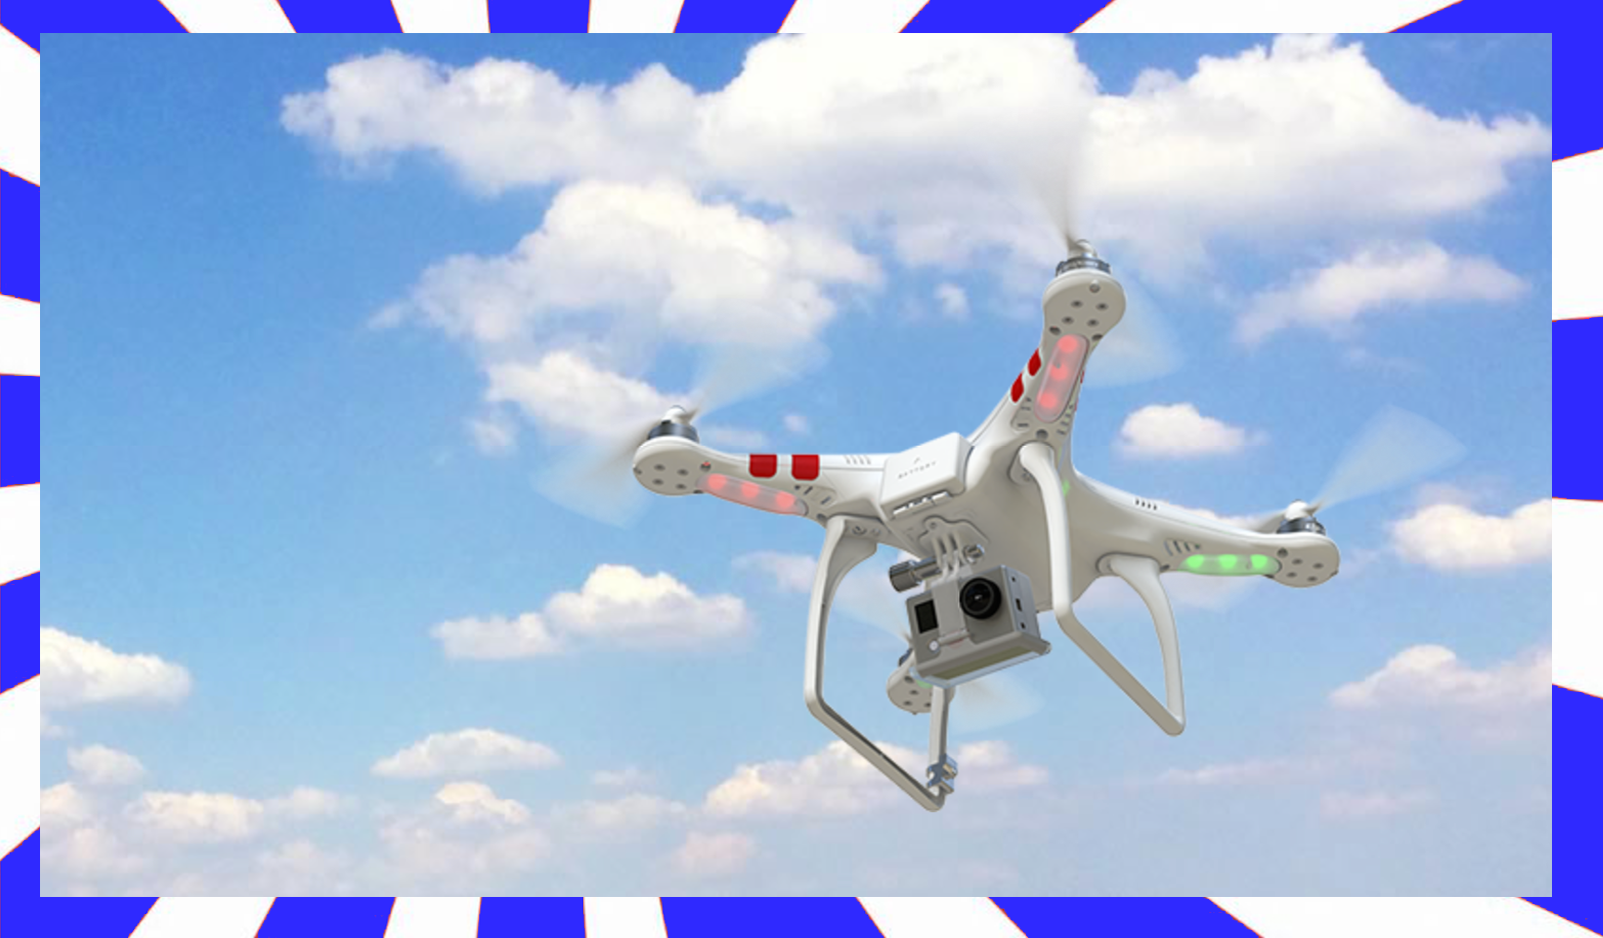 dji phantom 2 with Zenmuse H3-3D Gimbal